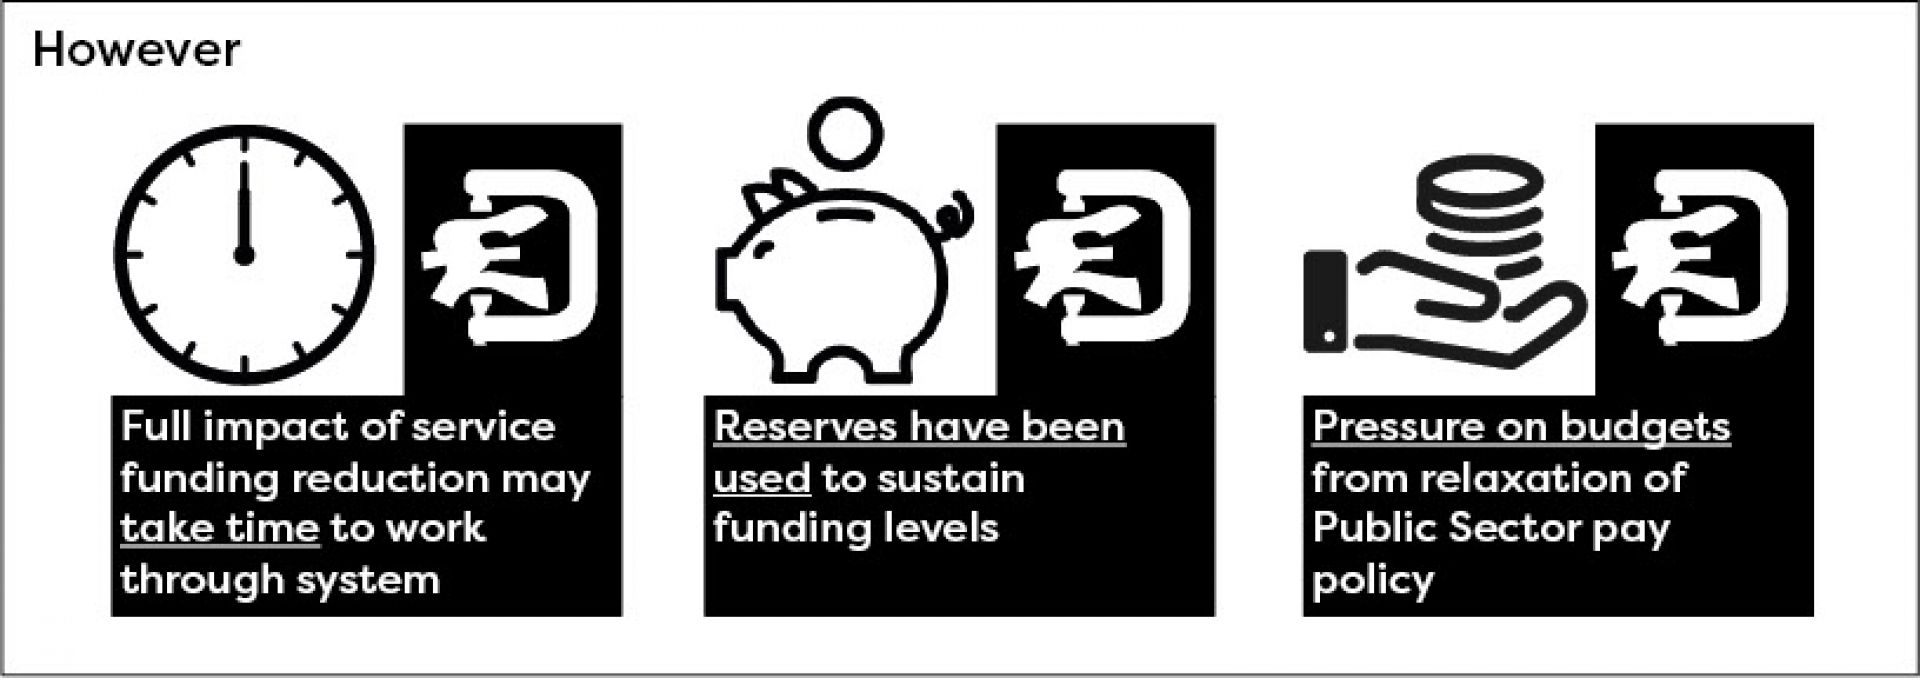 However services, reserves and budgets have been affected